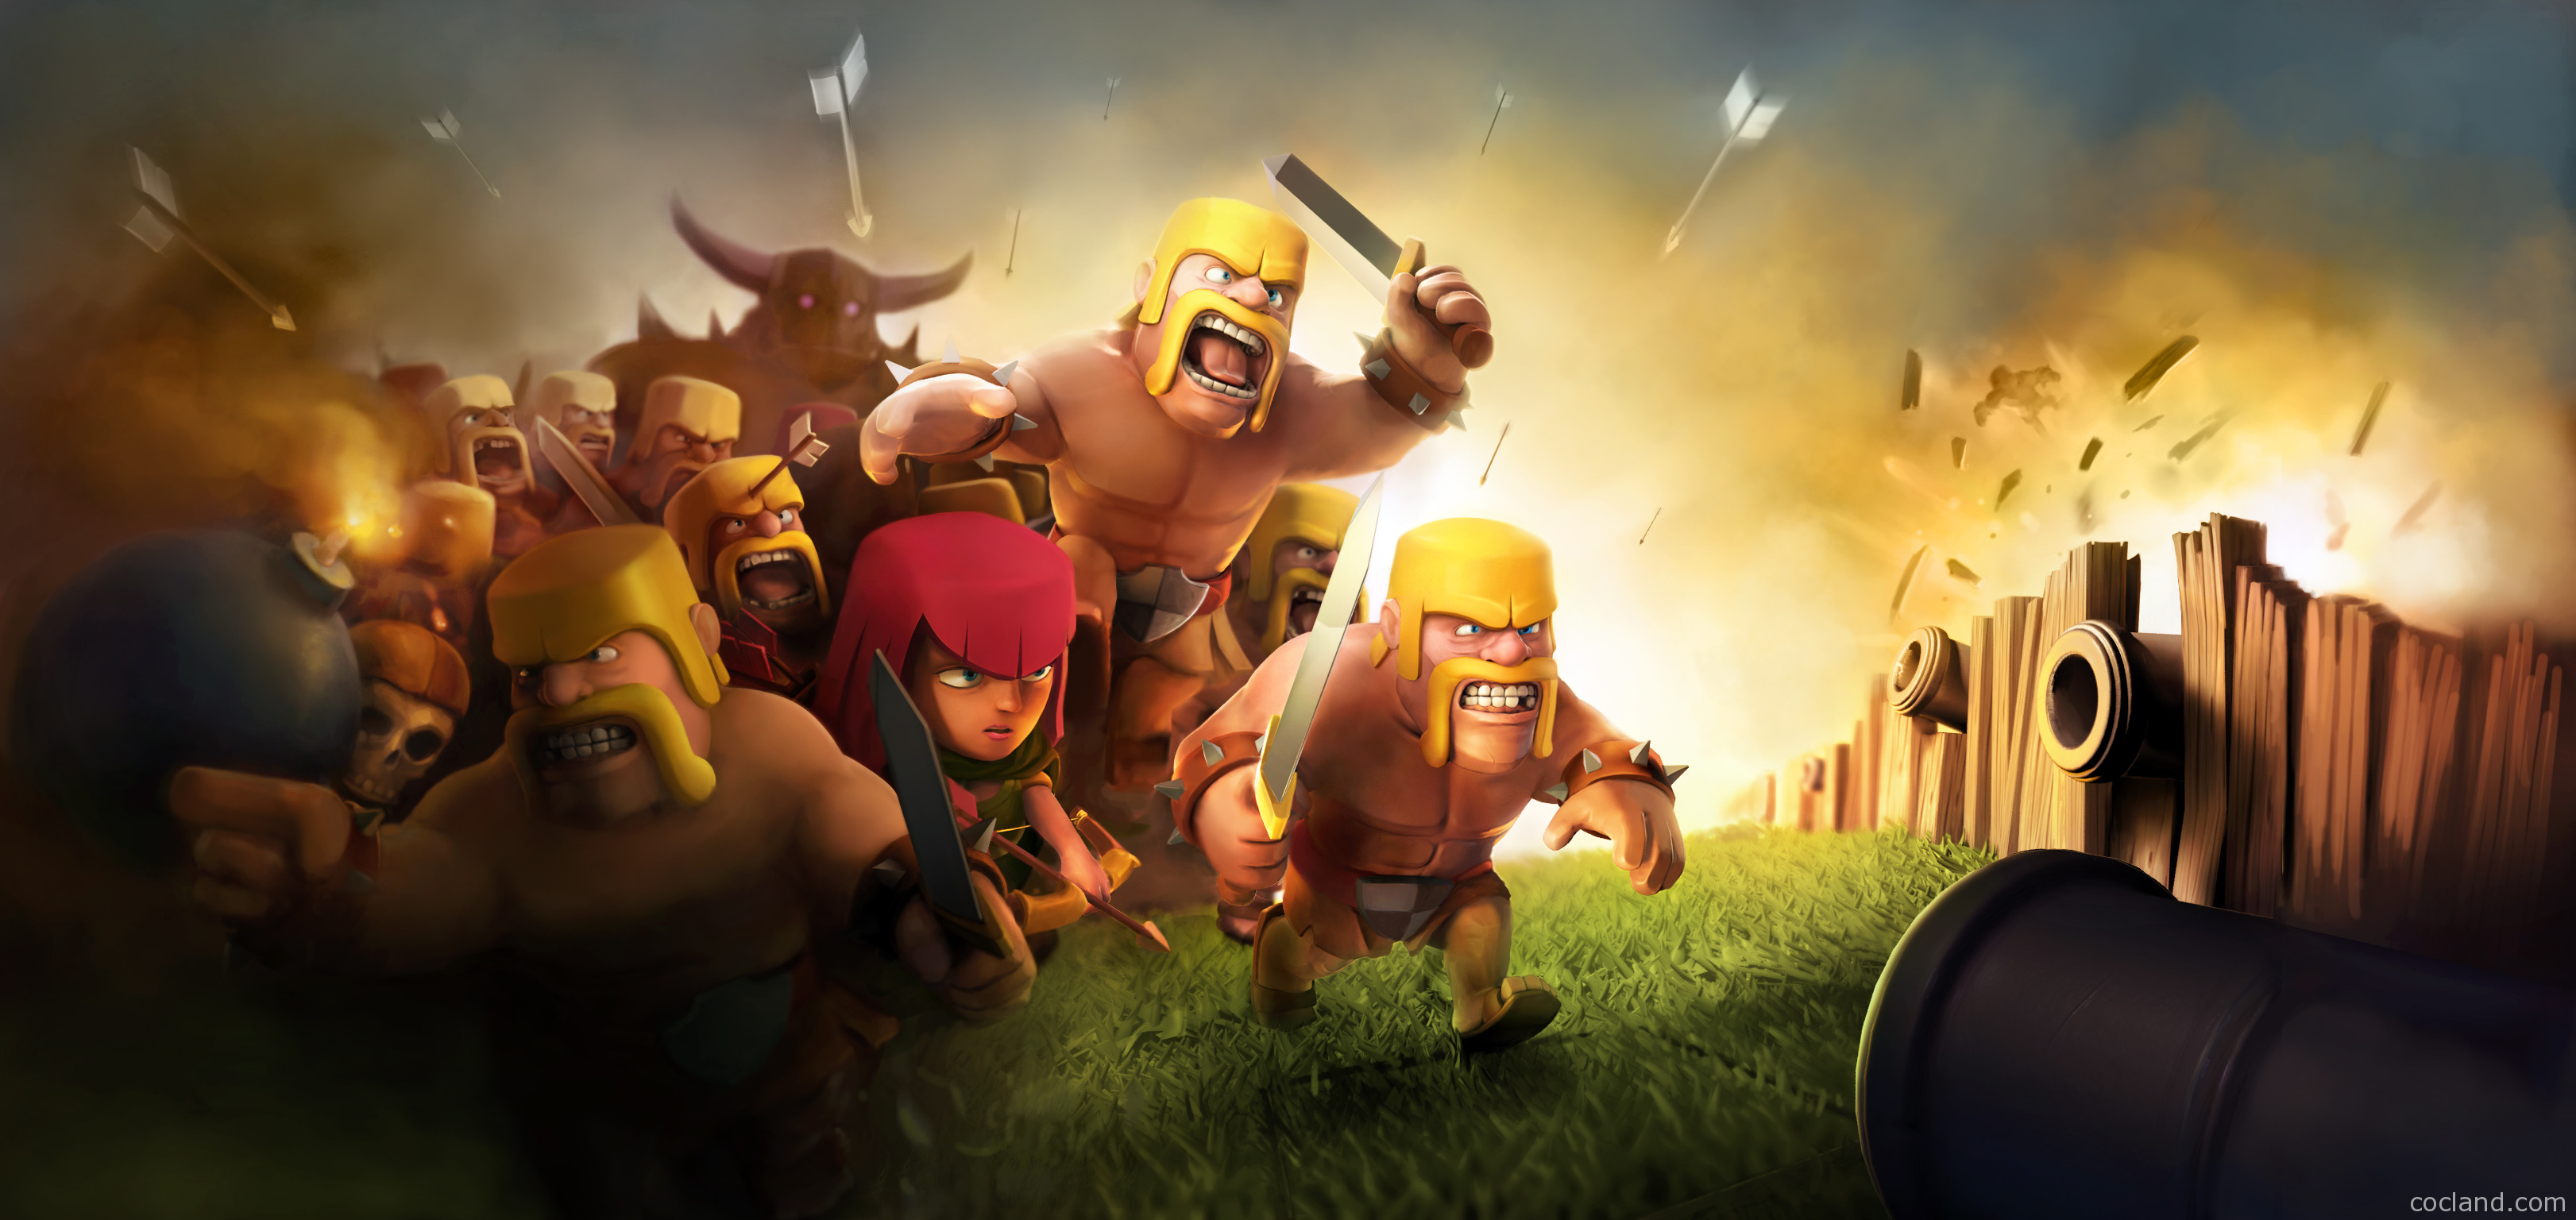 Clash of Clans Wallpapers Best Wallpapers 3243x1536